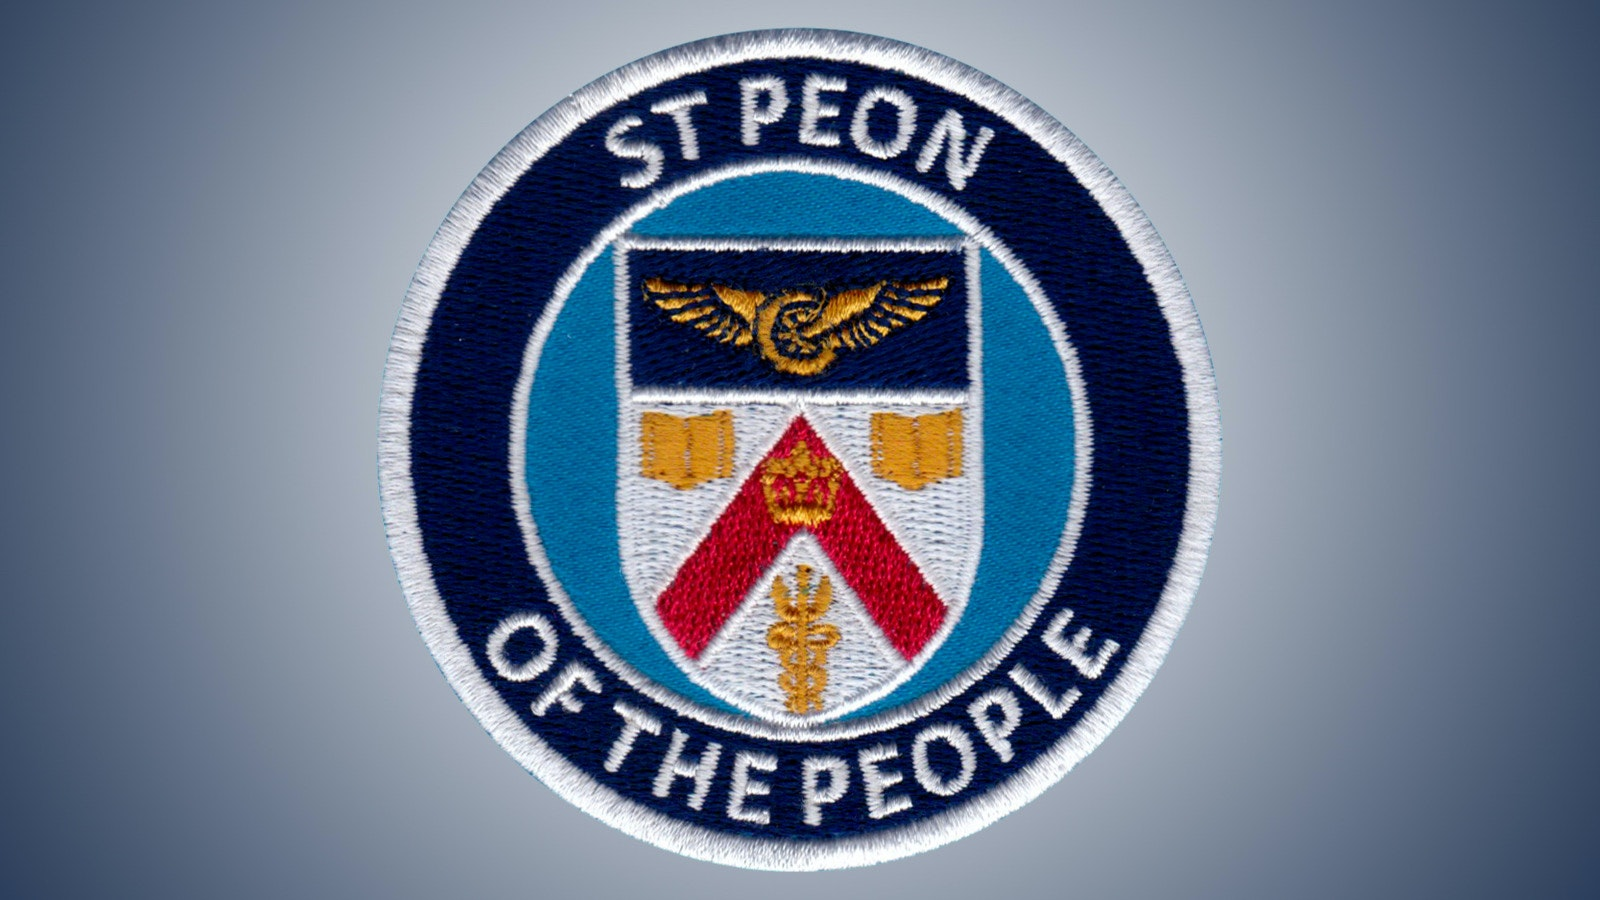 St. Peon of the People